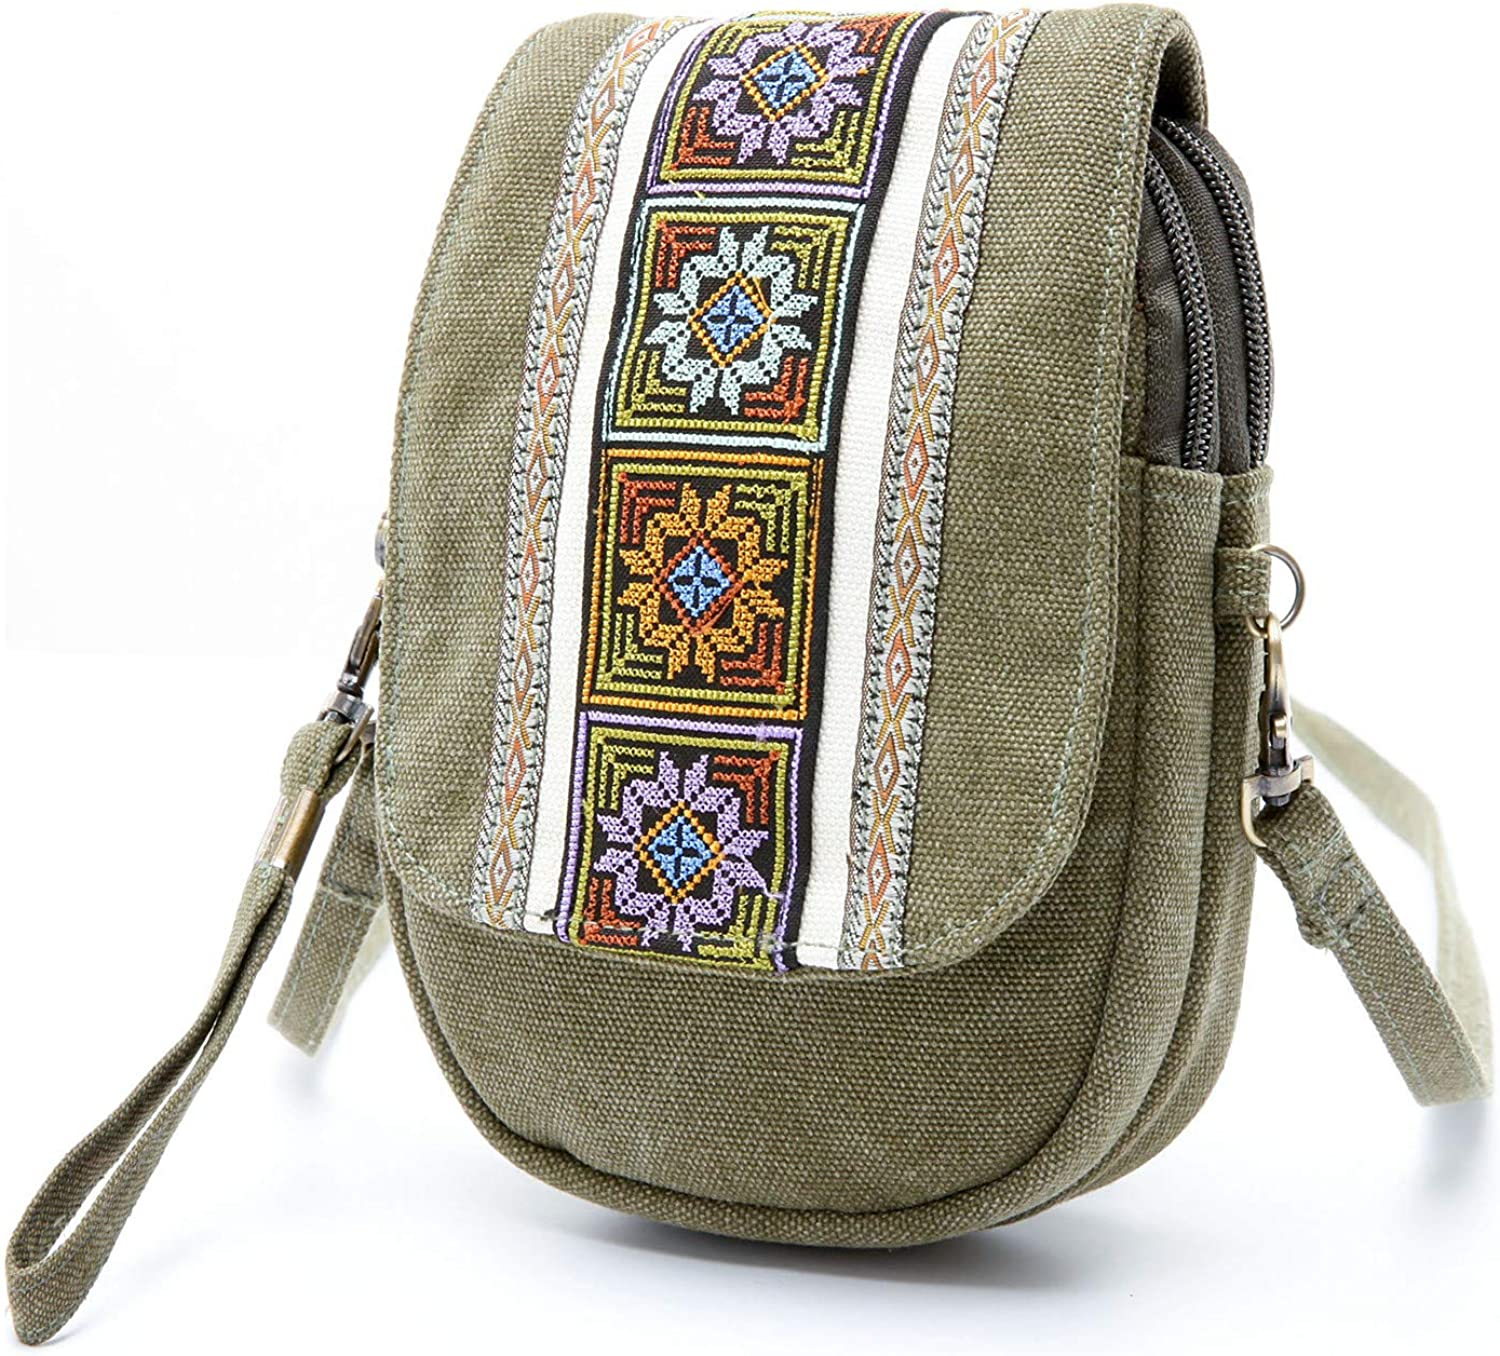 Can/'t I/'m Booked Embroidered Sling Bag